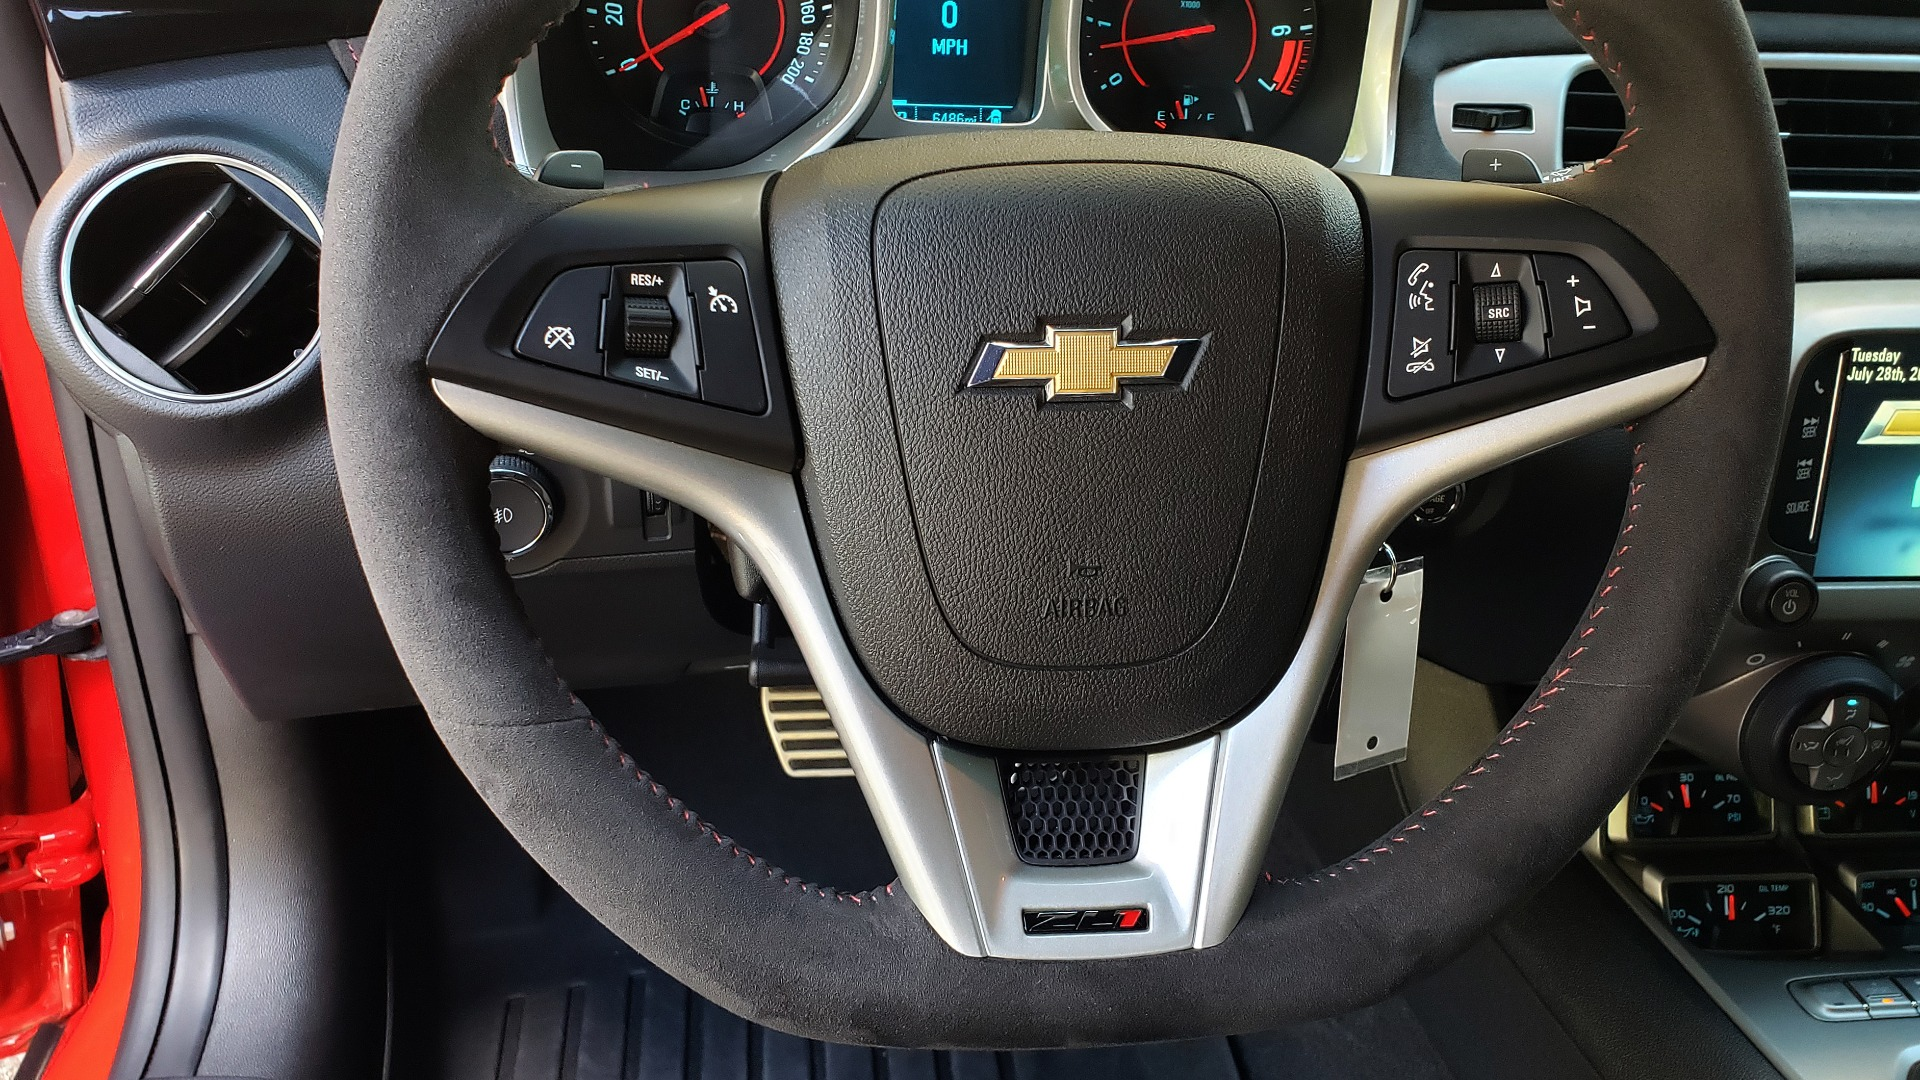 Used 2013 Chevrolet CAMARO ZL1 580HP / AUTO / NAV / BOSTON ACOUSTIC SND / REARVIEW for sale $40,995 at Formula Imports in Charlotte NC 28227 49